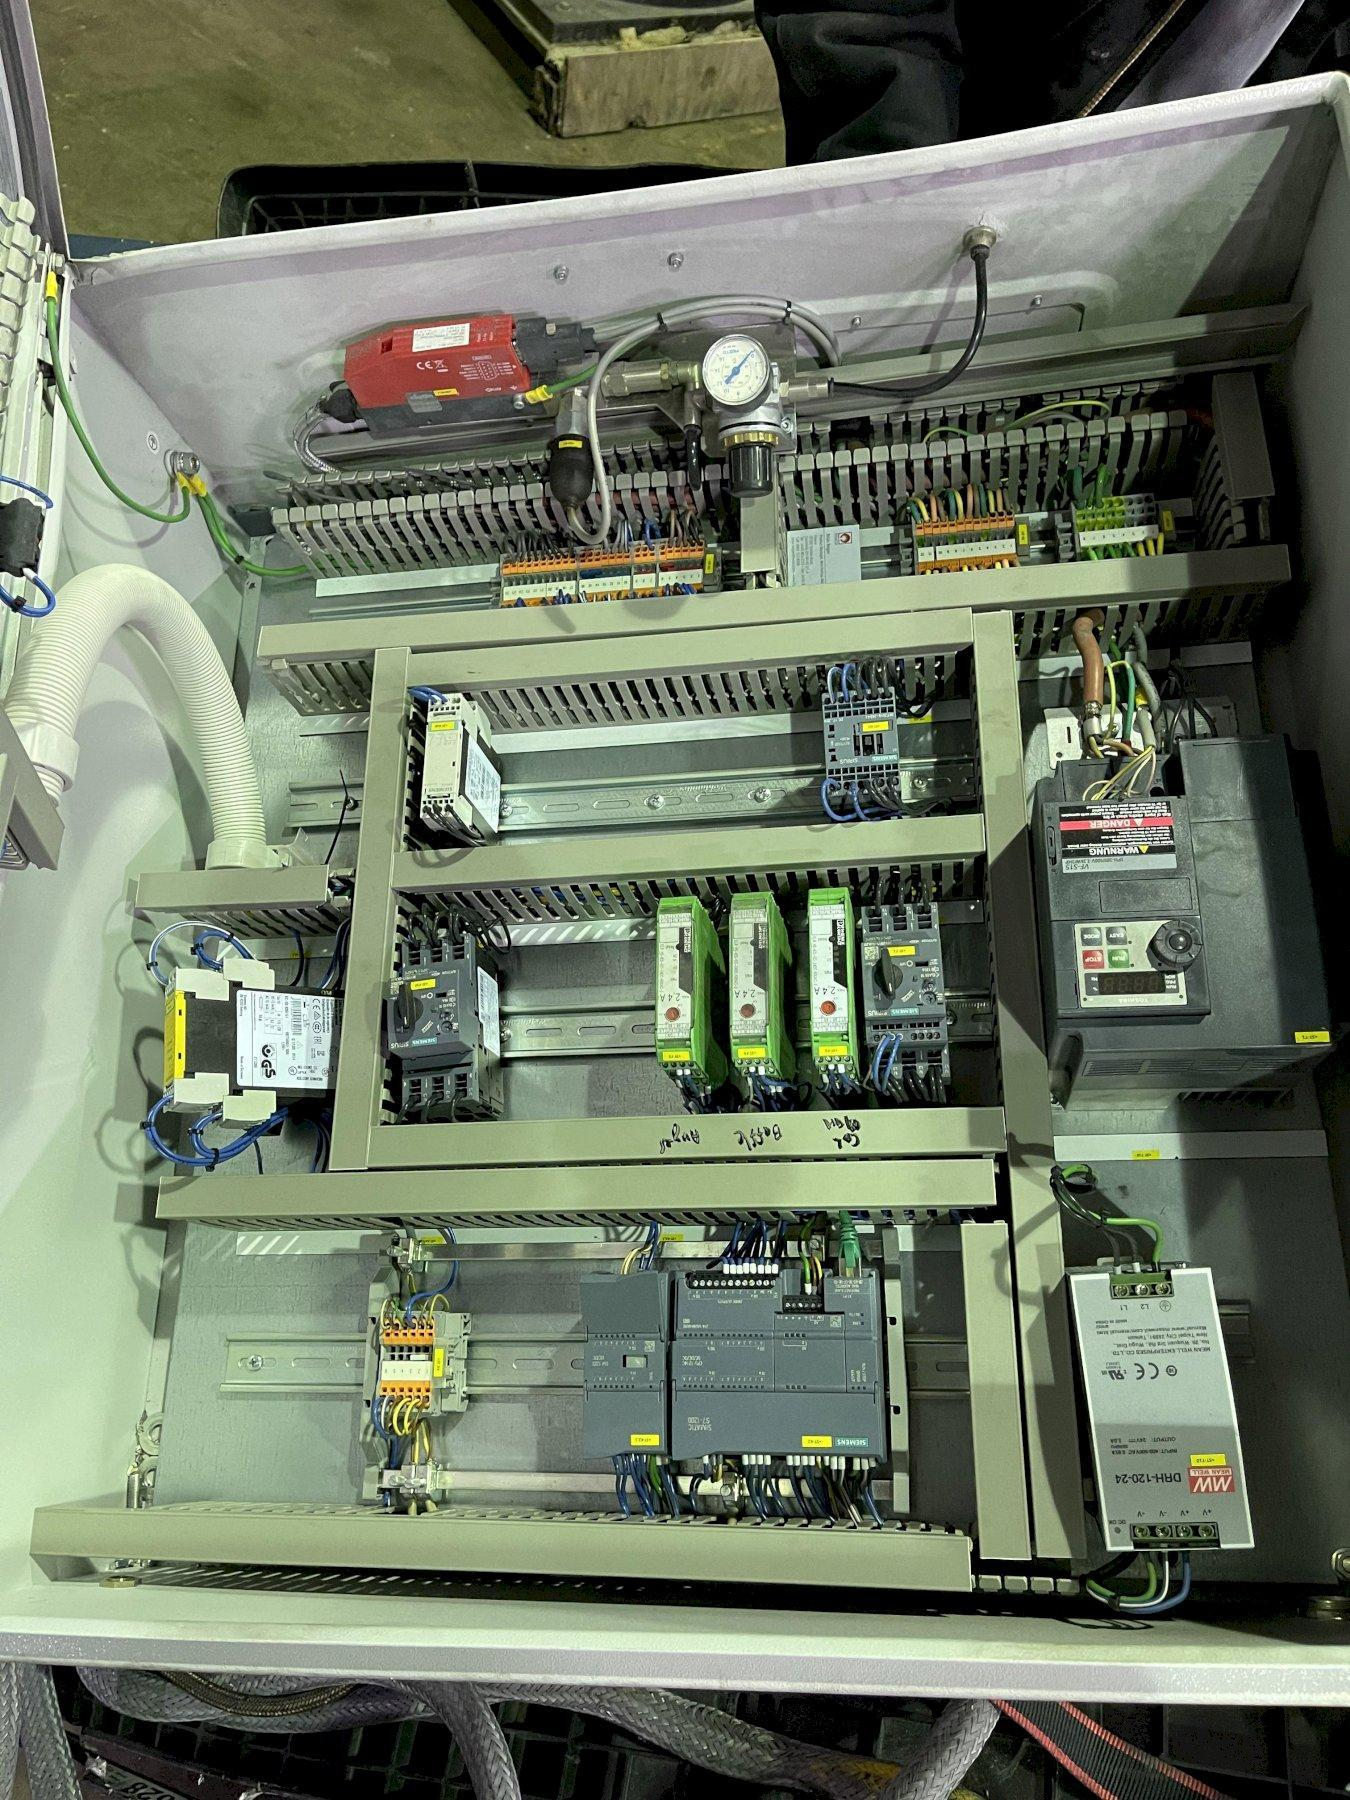 2018 Boma Wissing model roto-stativ MTS-1500 1x degassing system s/n fdu 1827 with nozzle, flux injection, stand and controls, Siemens simatic s7-1200 plc, Toshiba vf-s15 variable frequency drive